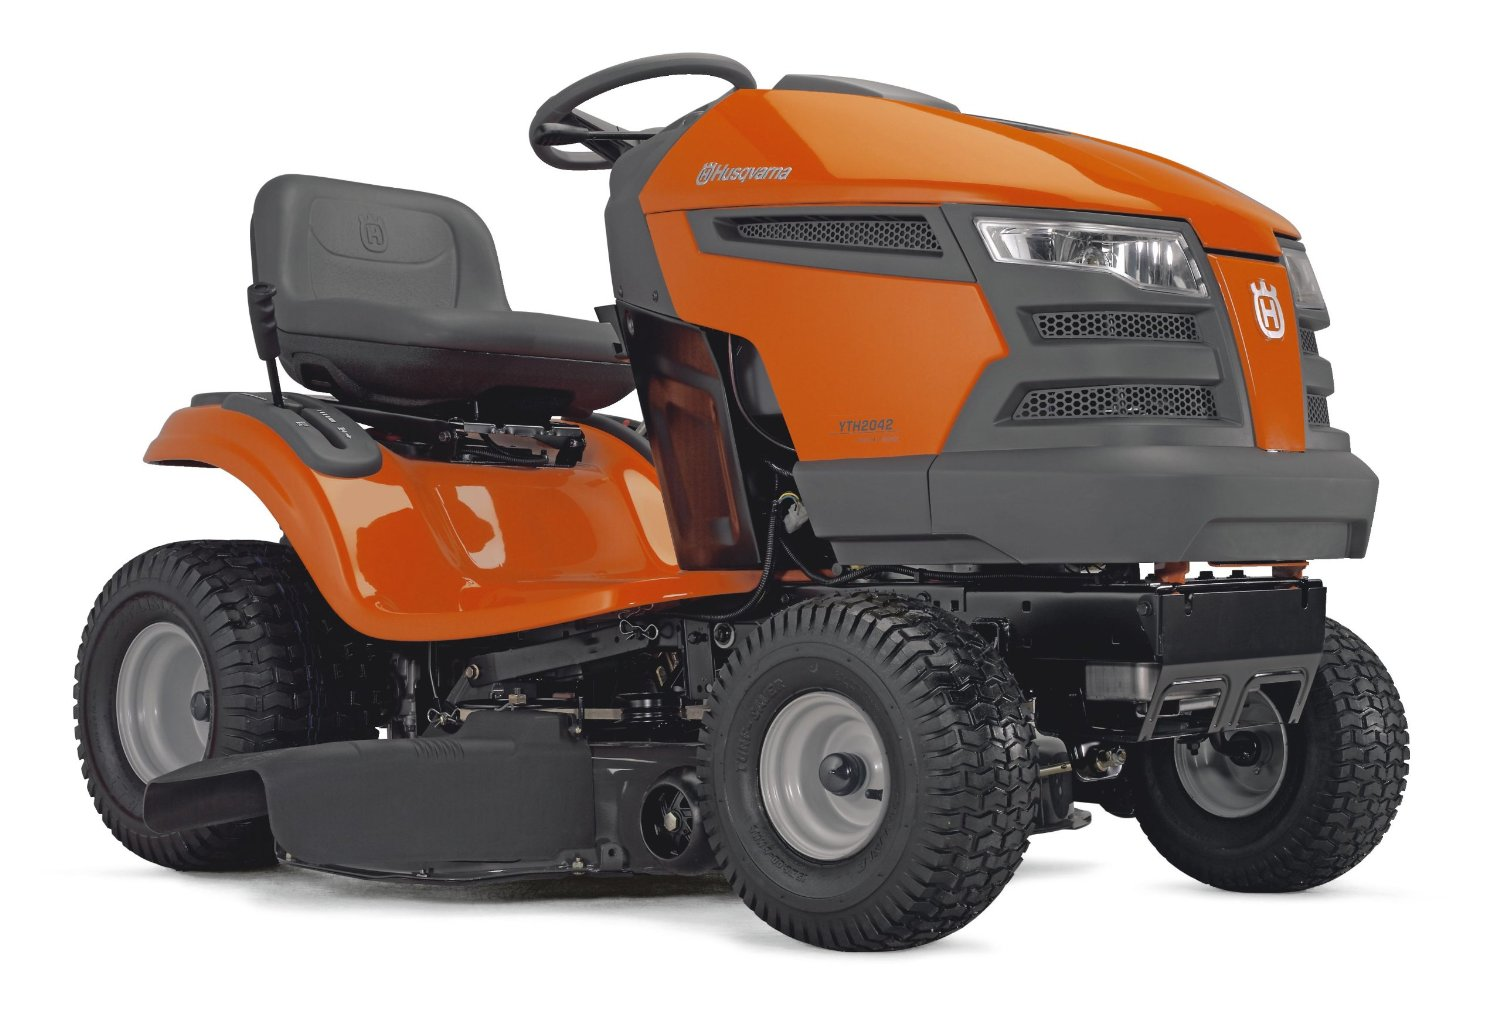 Riding Lawn Mower Tractor : Yth husqvarna lawn tractor review top lawnmowers